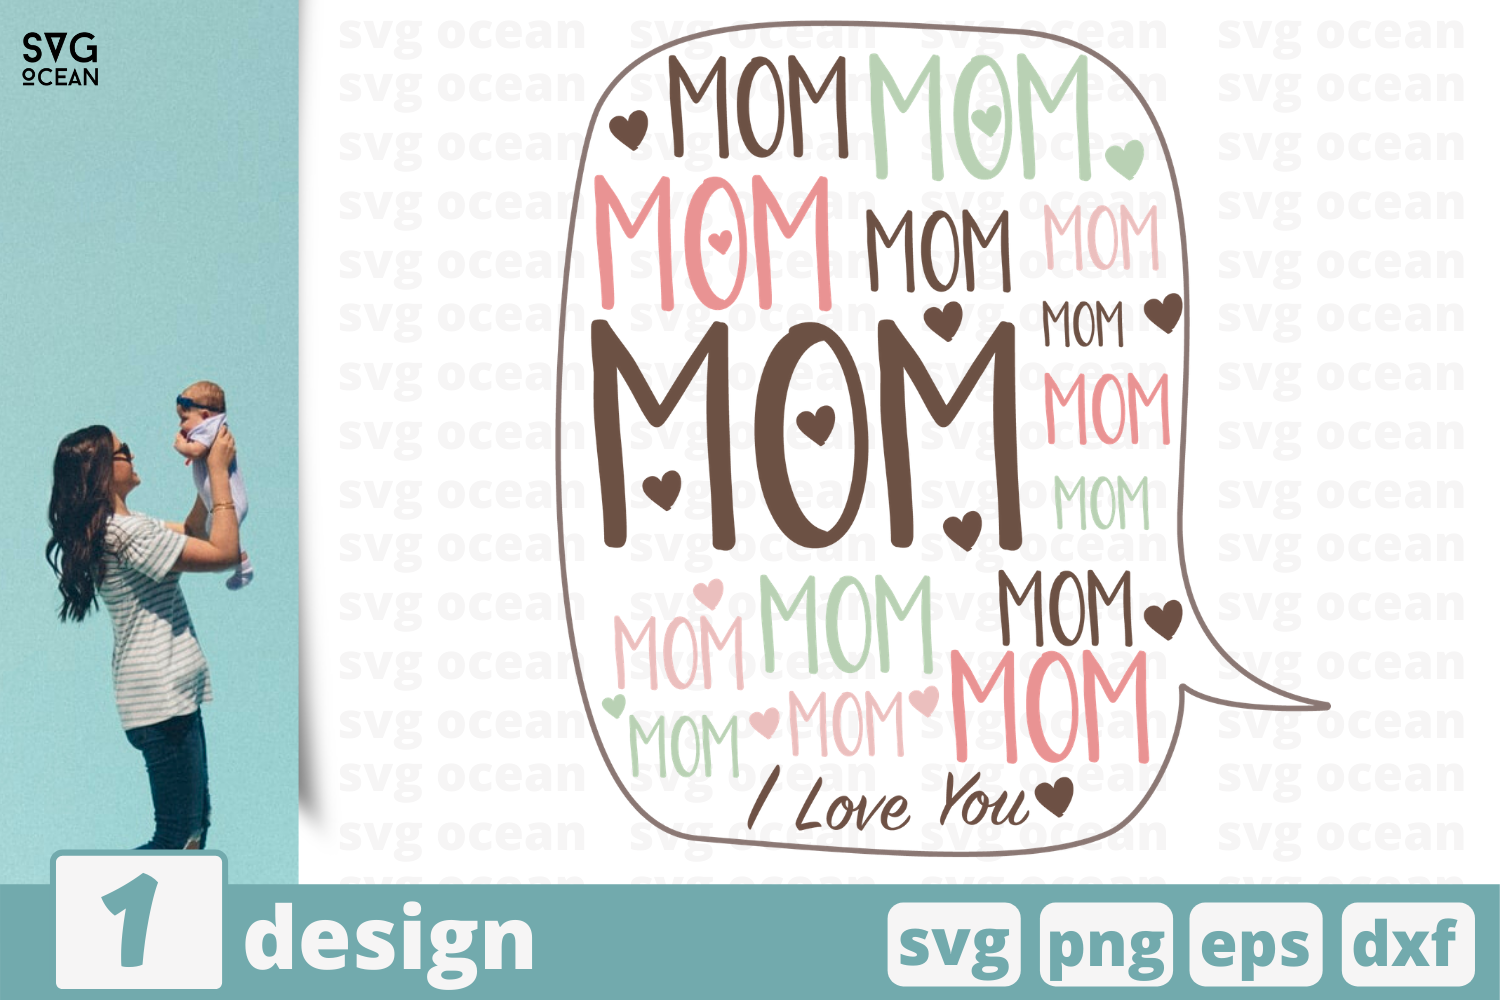 Download Free Mom Graphic By Svgocean Creative Fabrica for Cricut Explore, Silhouette and other cutting machines.